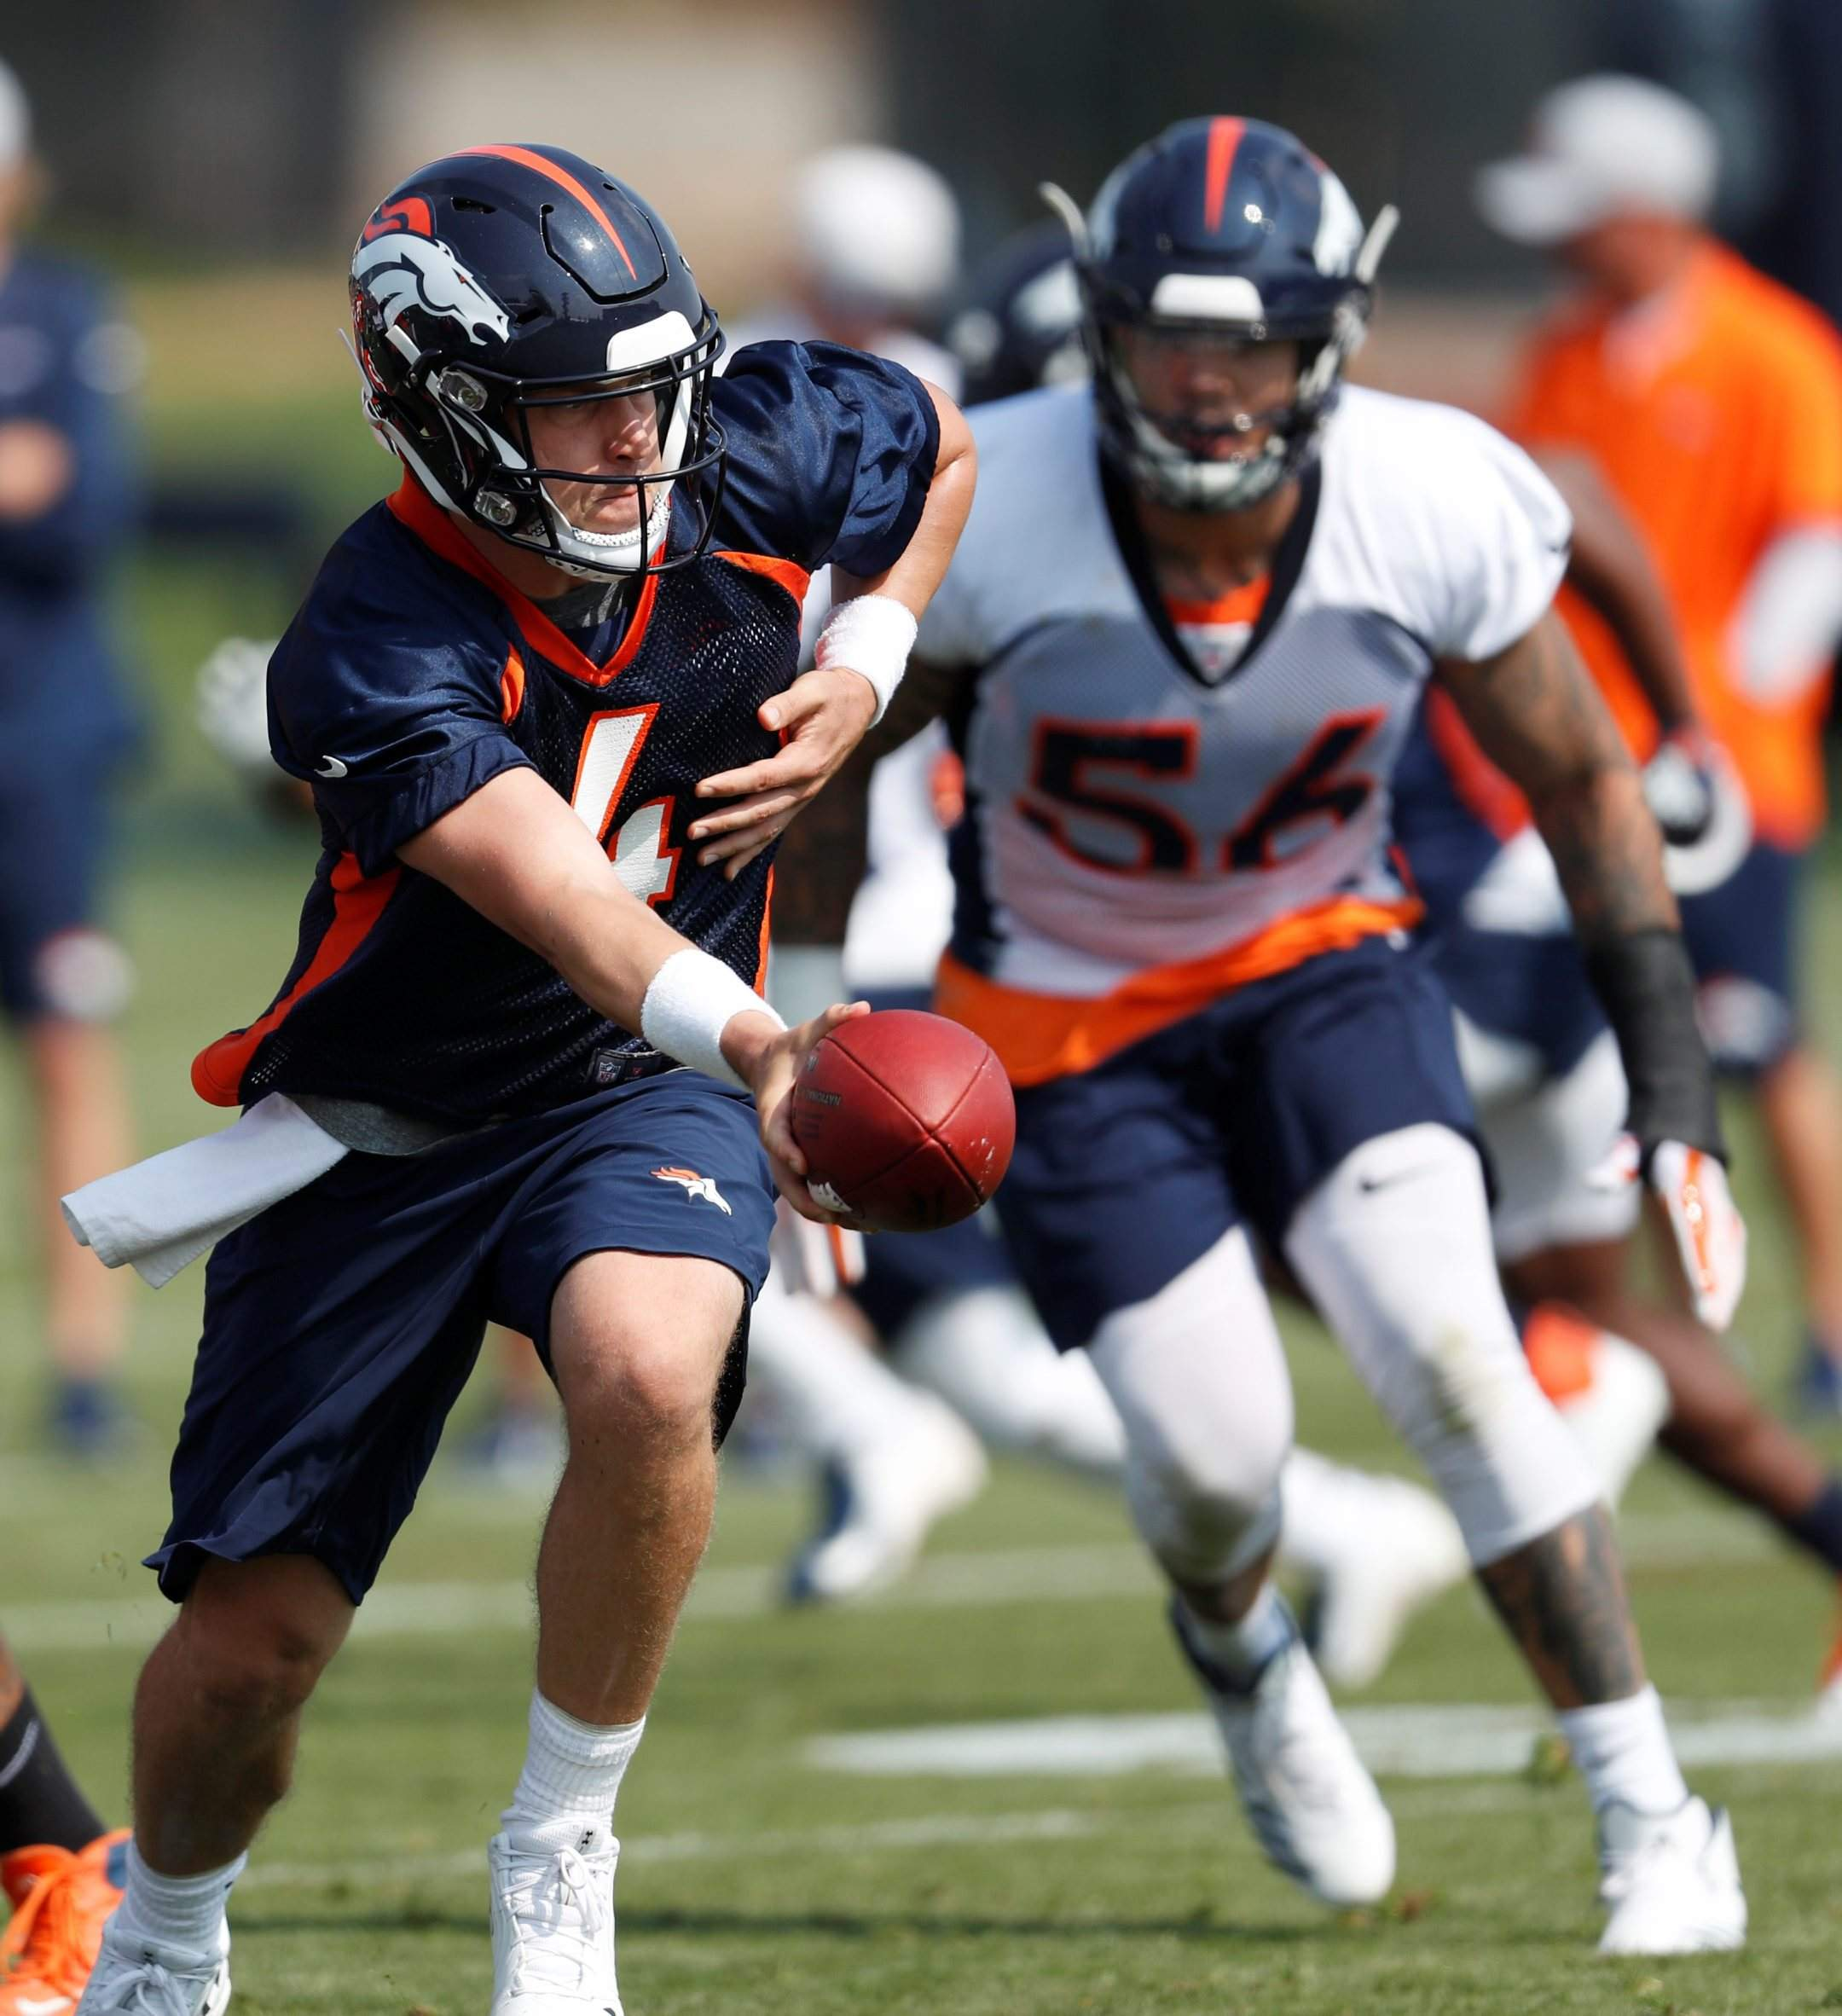 Denver Shooting July 2018: Case Keenum Brings Certainty, Chemistry To Denver Broncos